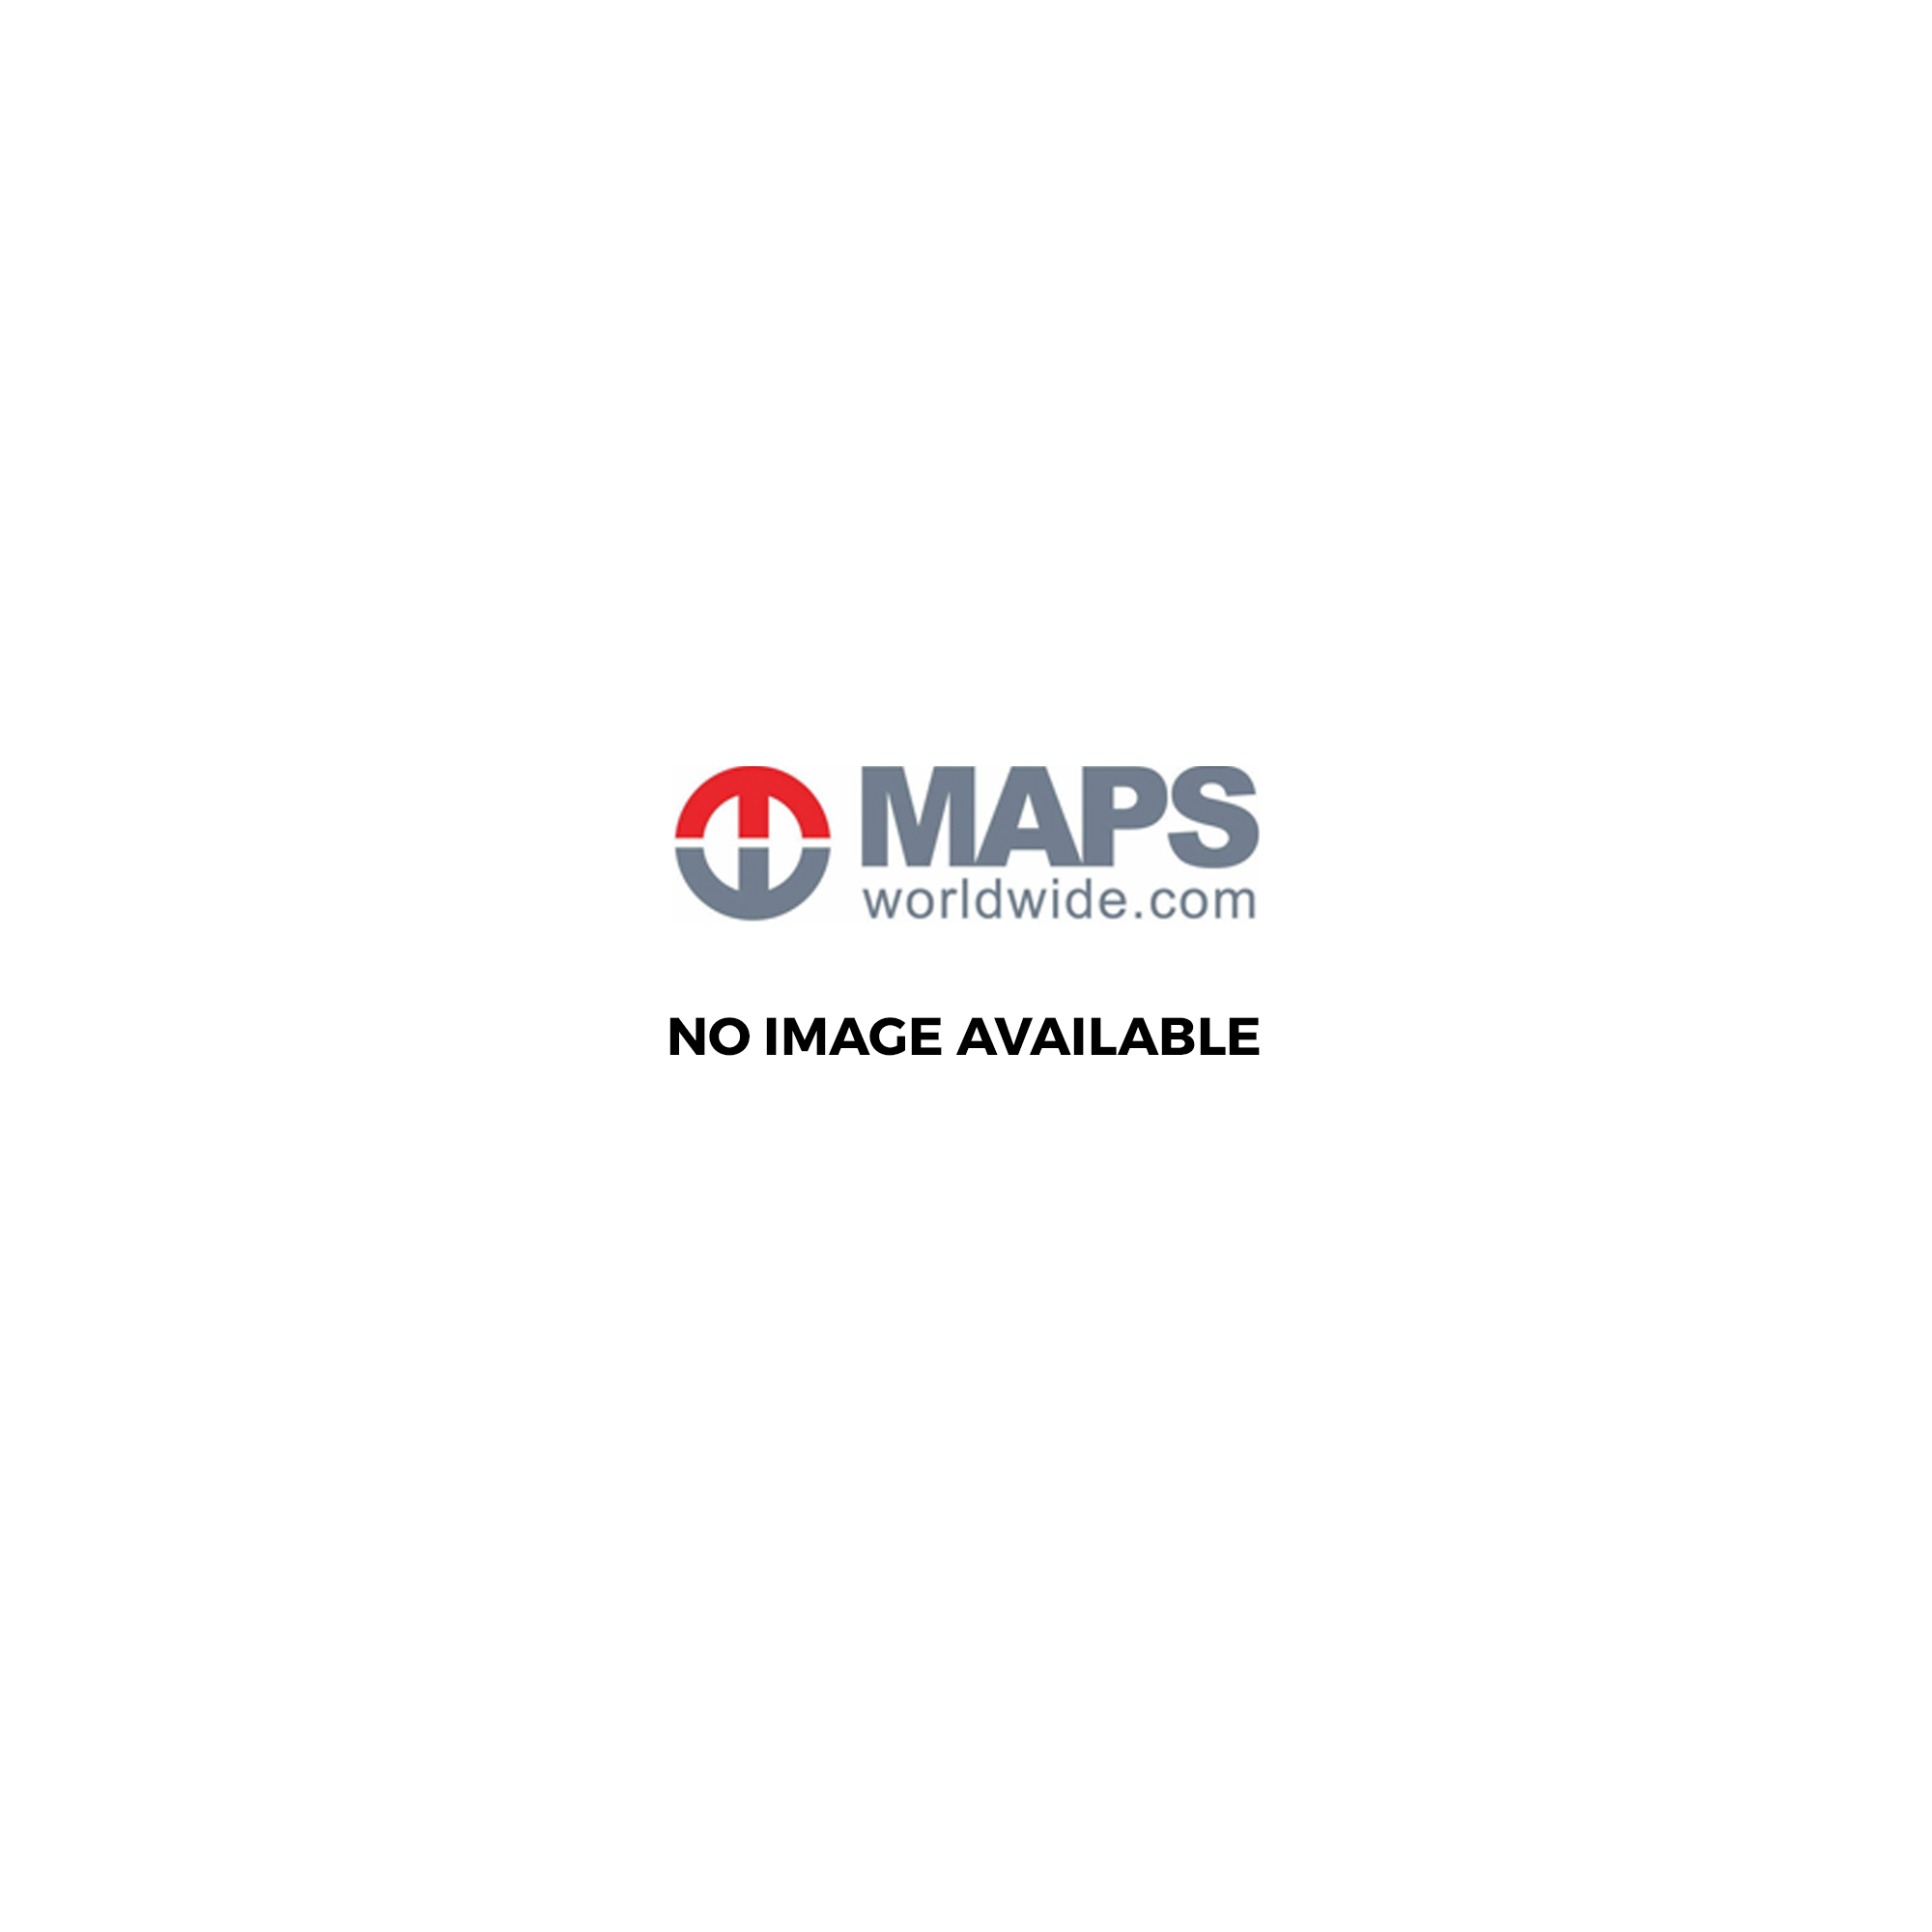 Michelin National Map Switzerland Europe From Maps - Michelin map portugal 733